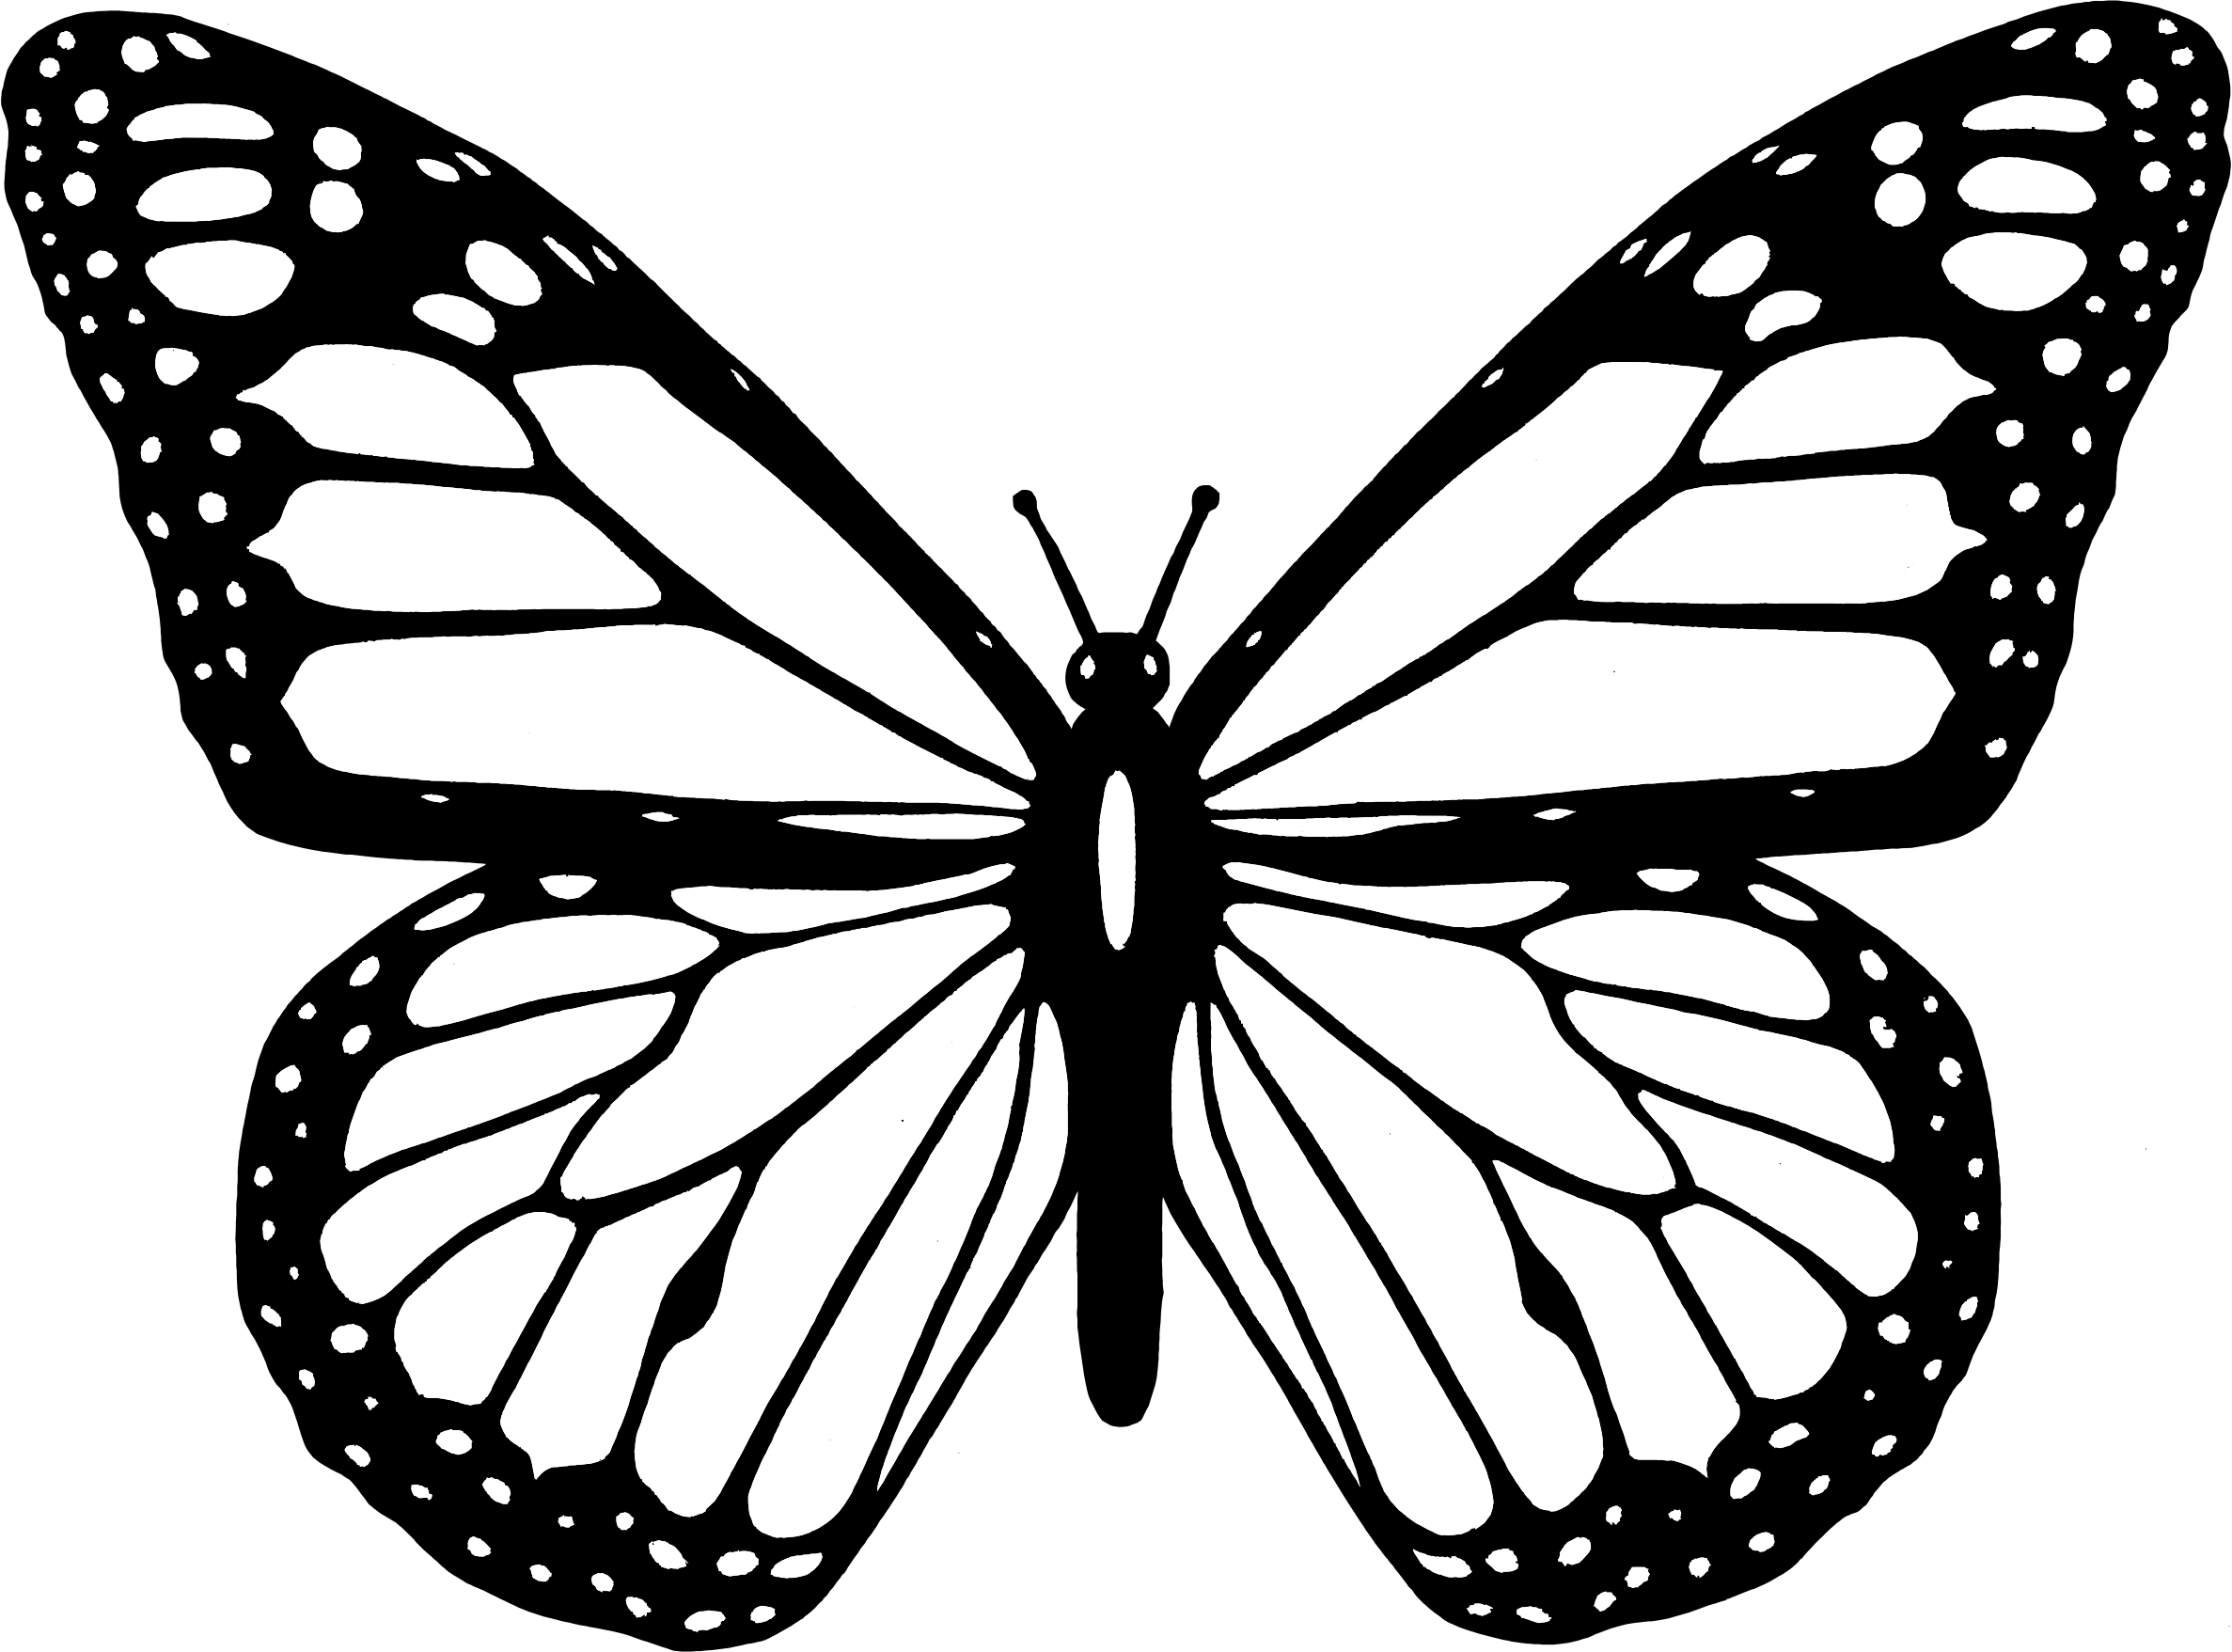 Clipart big image png. Butterfly clip art black and white image black and white download